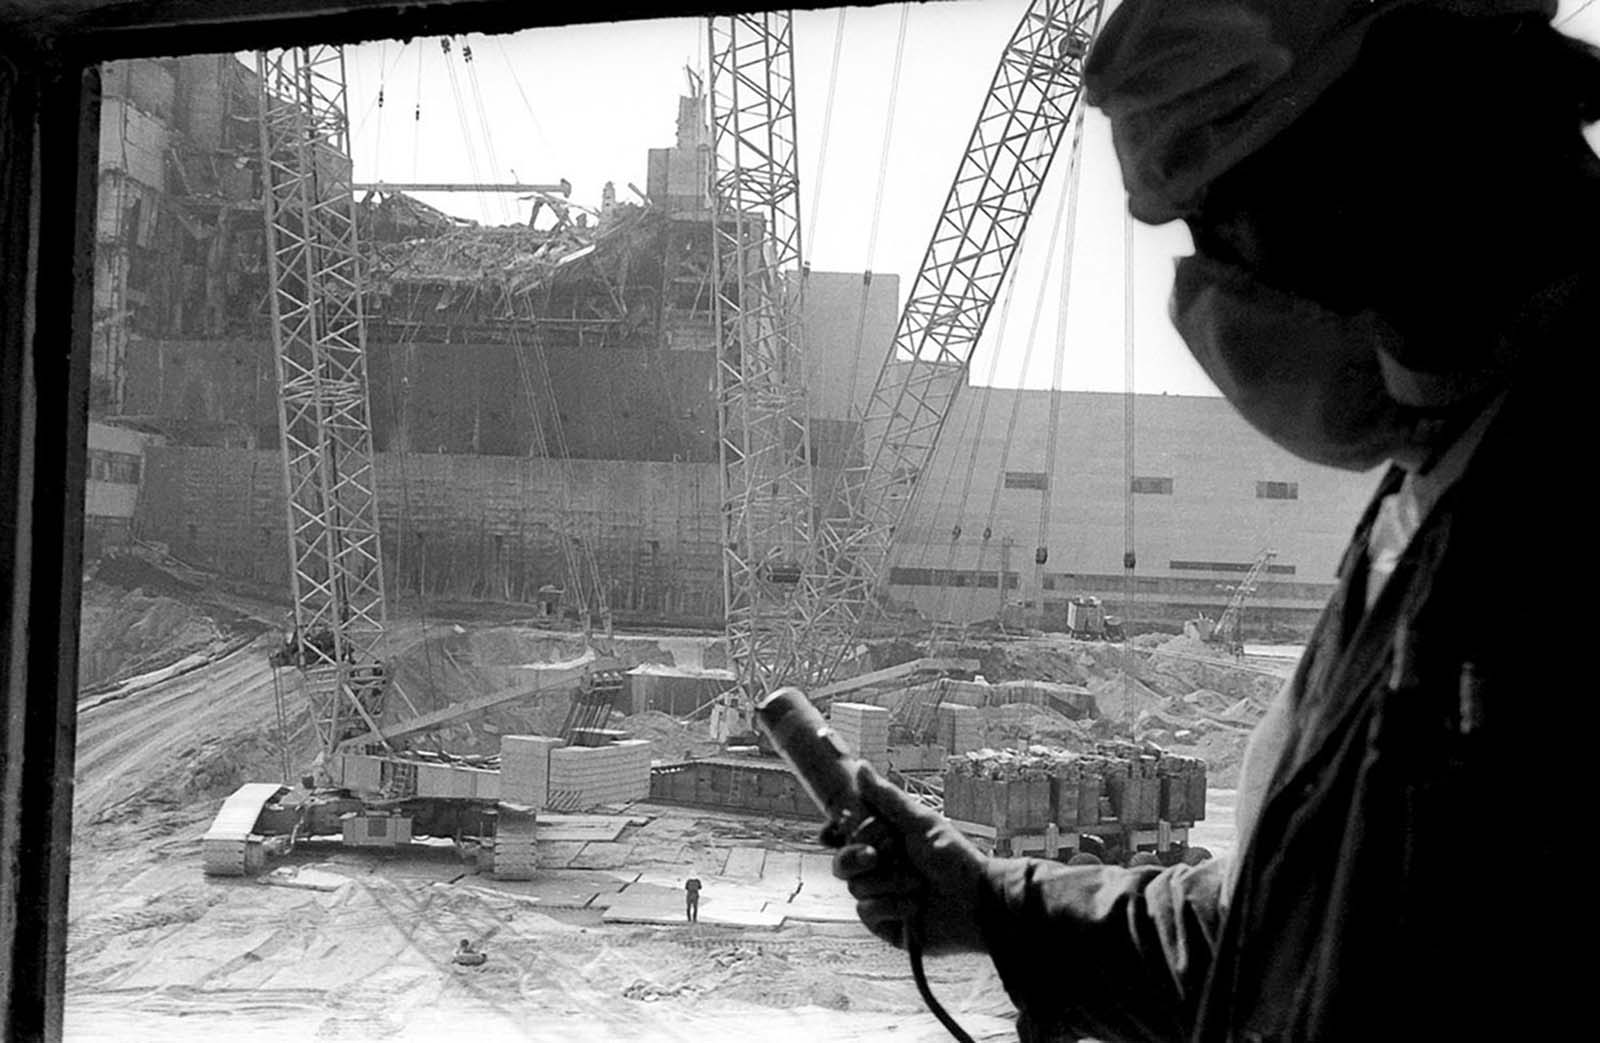 A Chernobyl nuclear-power-plant worker holds a dosimeter to measure radiation levels, with the under-construction sarcophagus, meant to contain the destroyed reactor, visible in the background, in this photo taken in 1986.